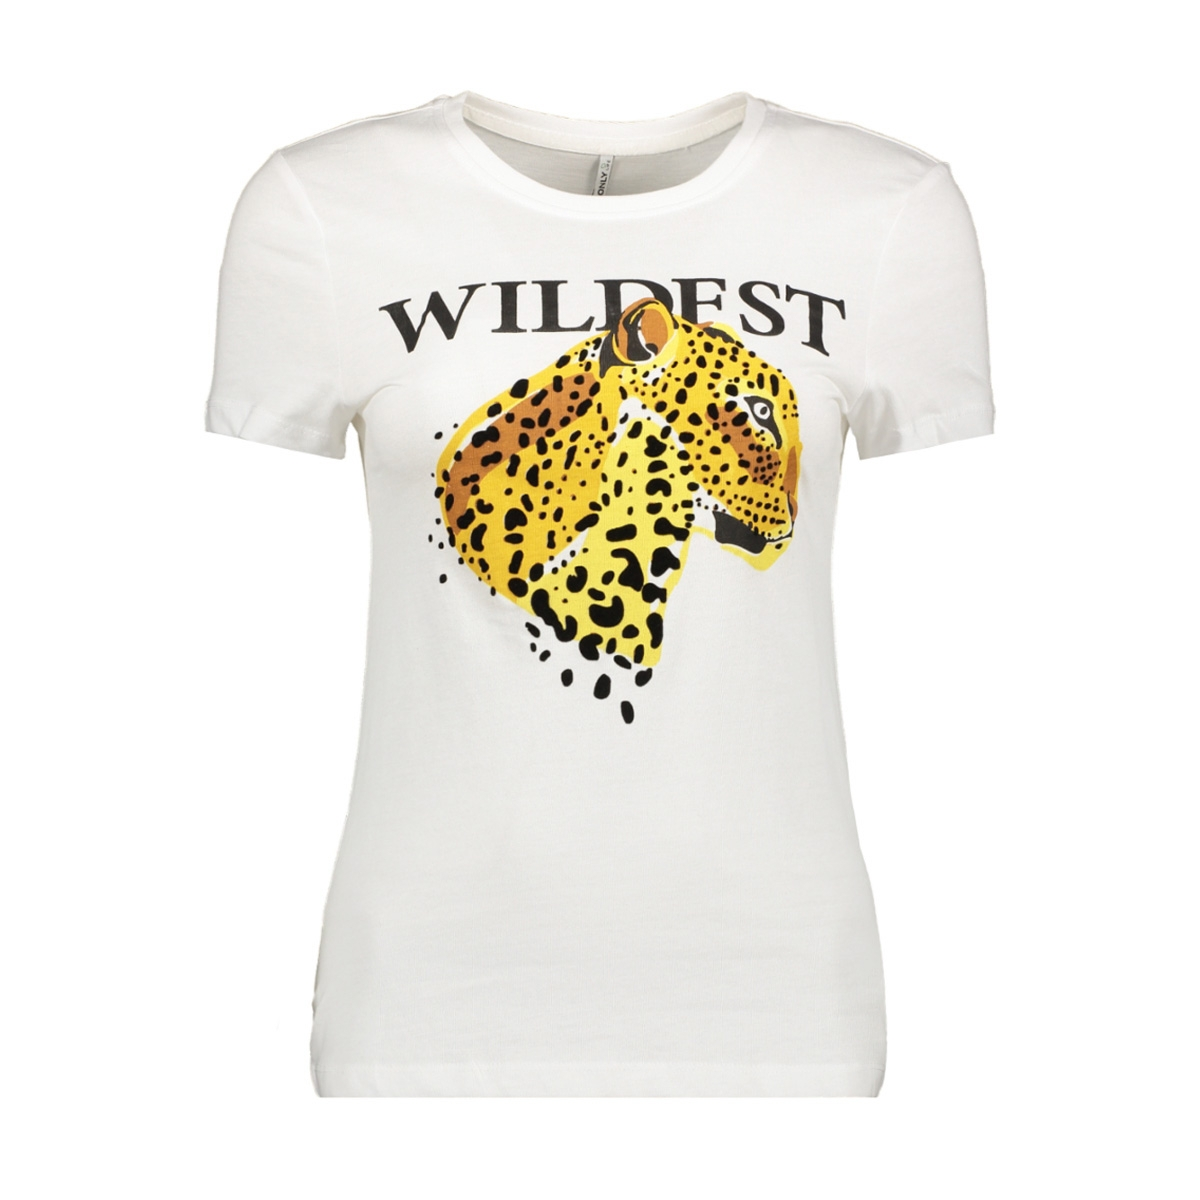 onlflea fit s/s leo top box co jrs 15183203 only t-shirt bright white/wildest